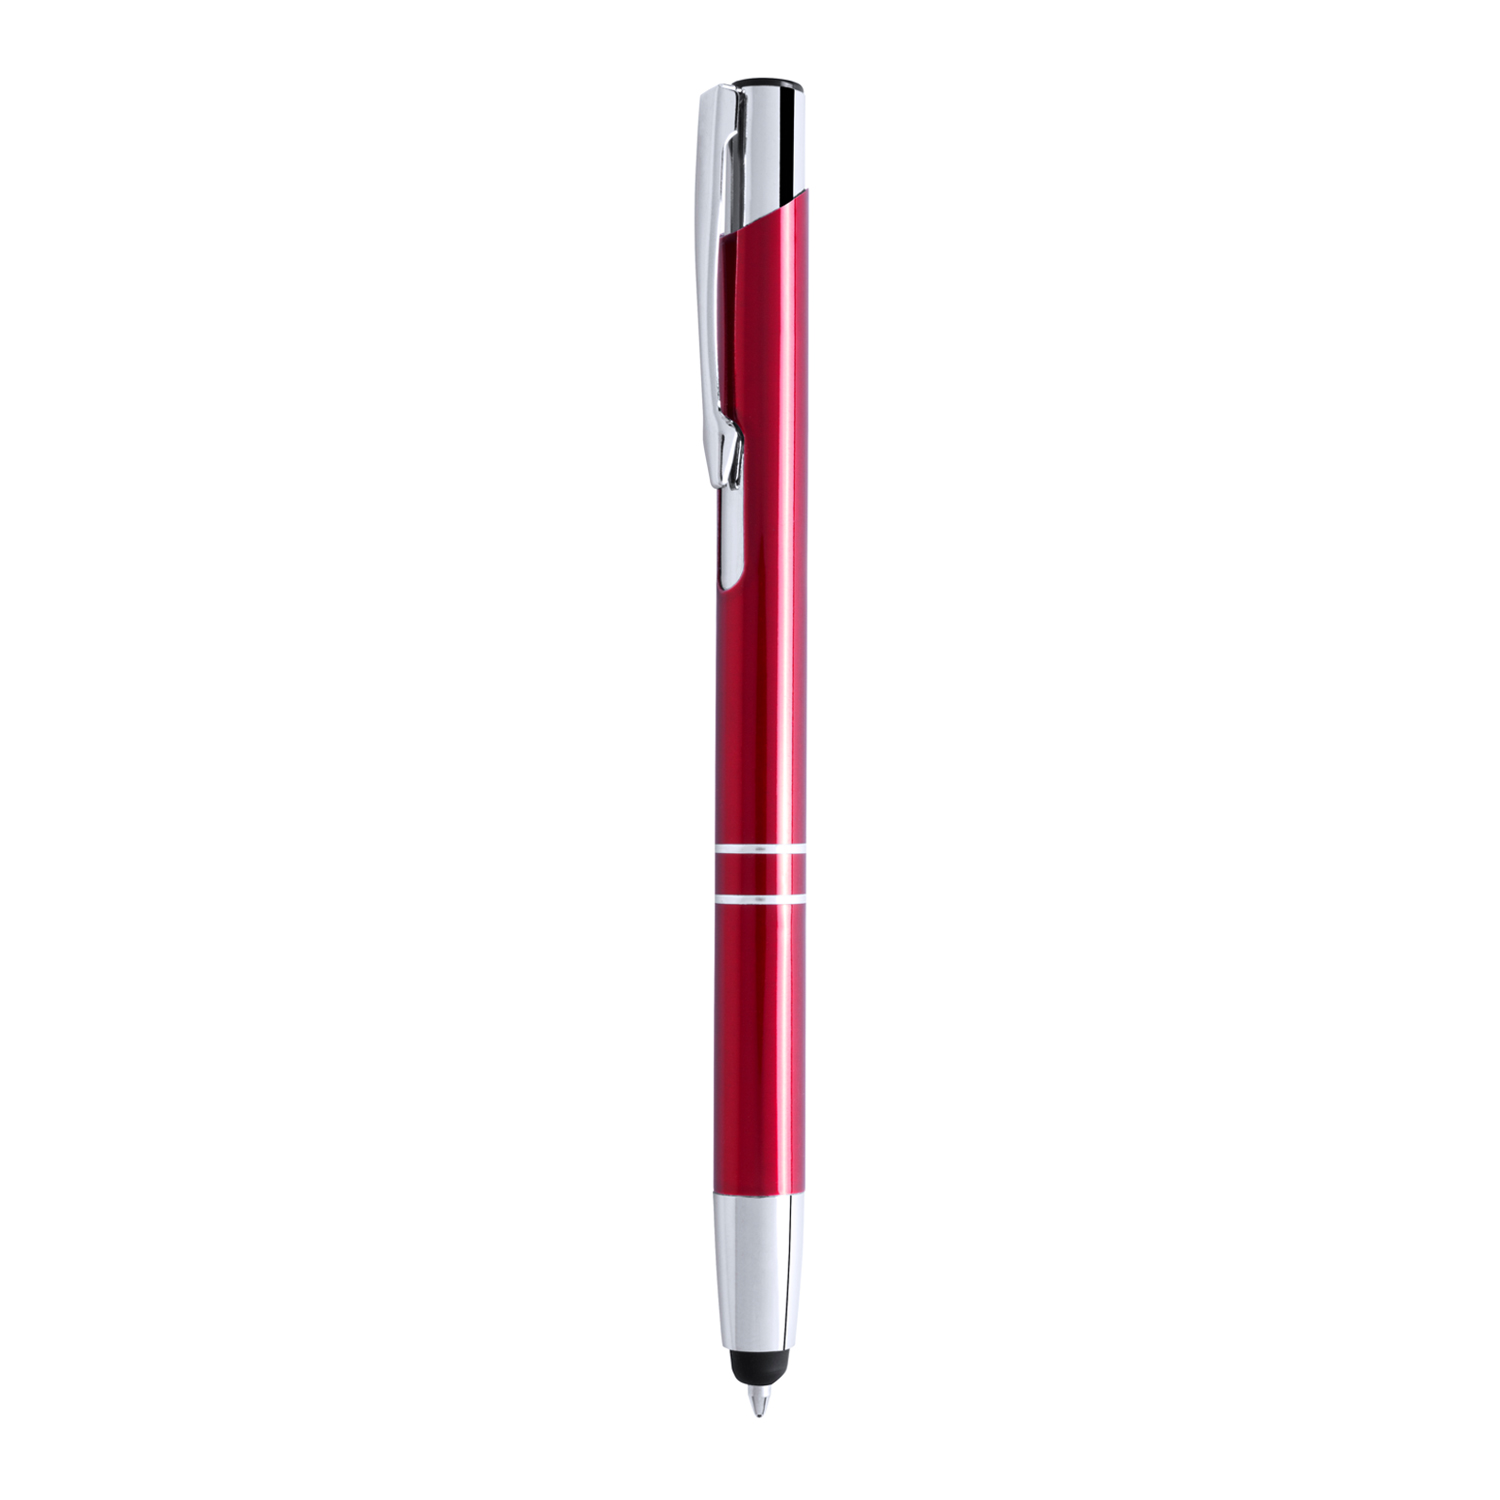 Ball Pen 058 (Aluminium ball pen) - hmi22058-04 (Red)